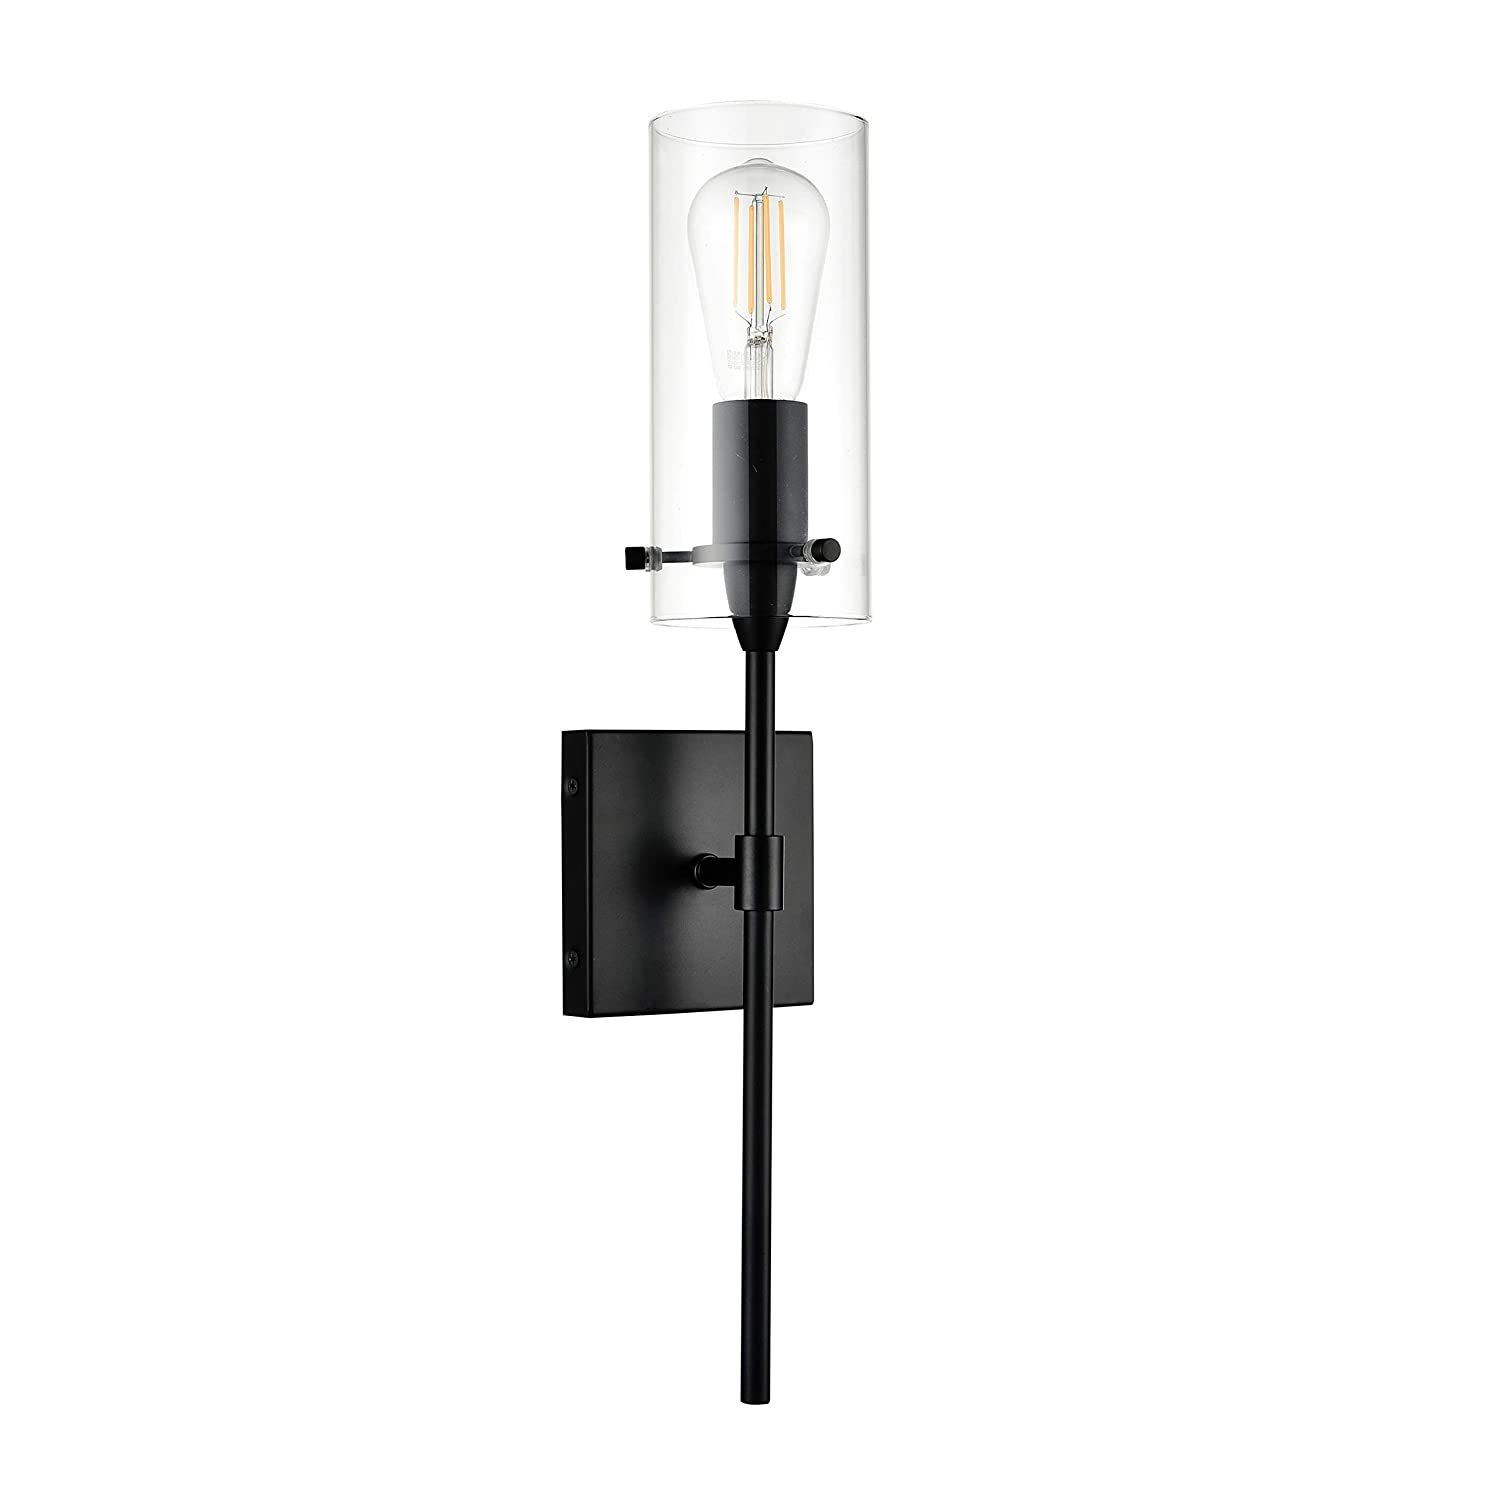 Effimero Wall Sconce Black Vanity Light Fixture LL-WL31-BLK